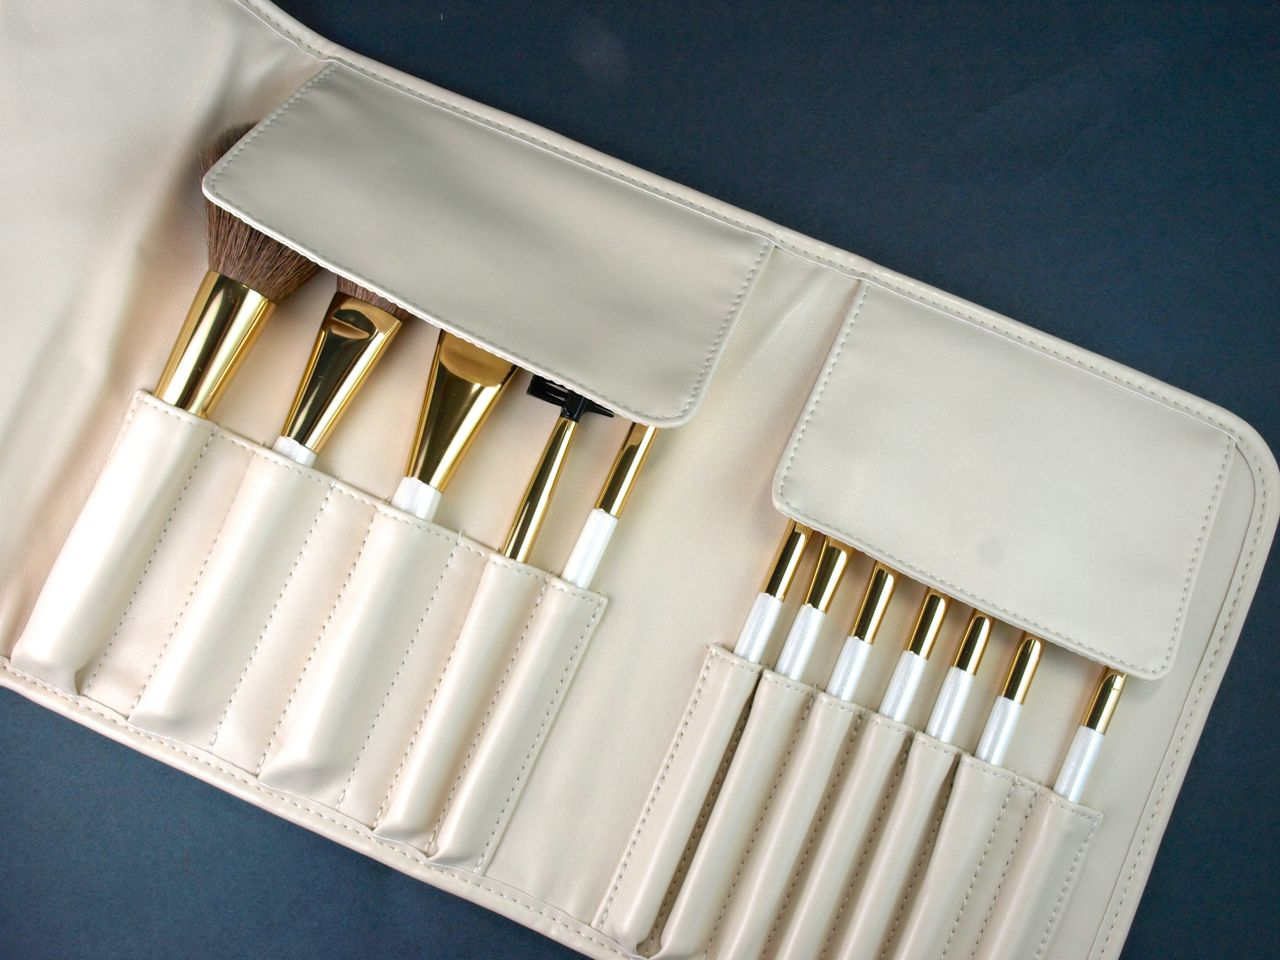 Sephora Gold Star Prestige Pro Brush Set: Review